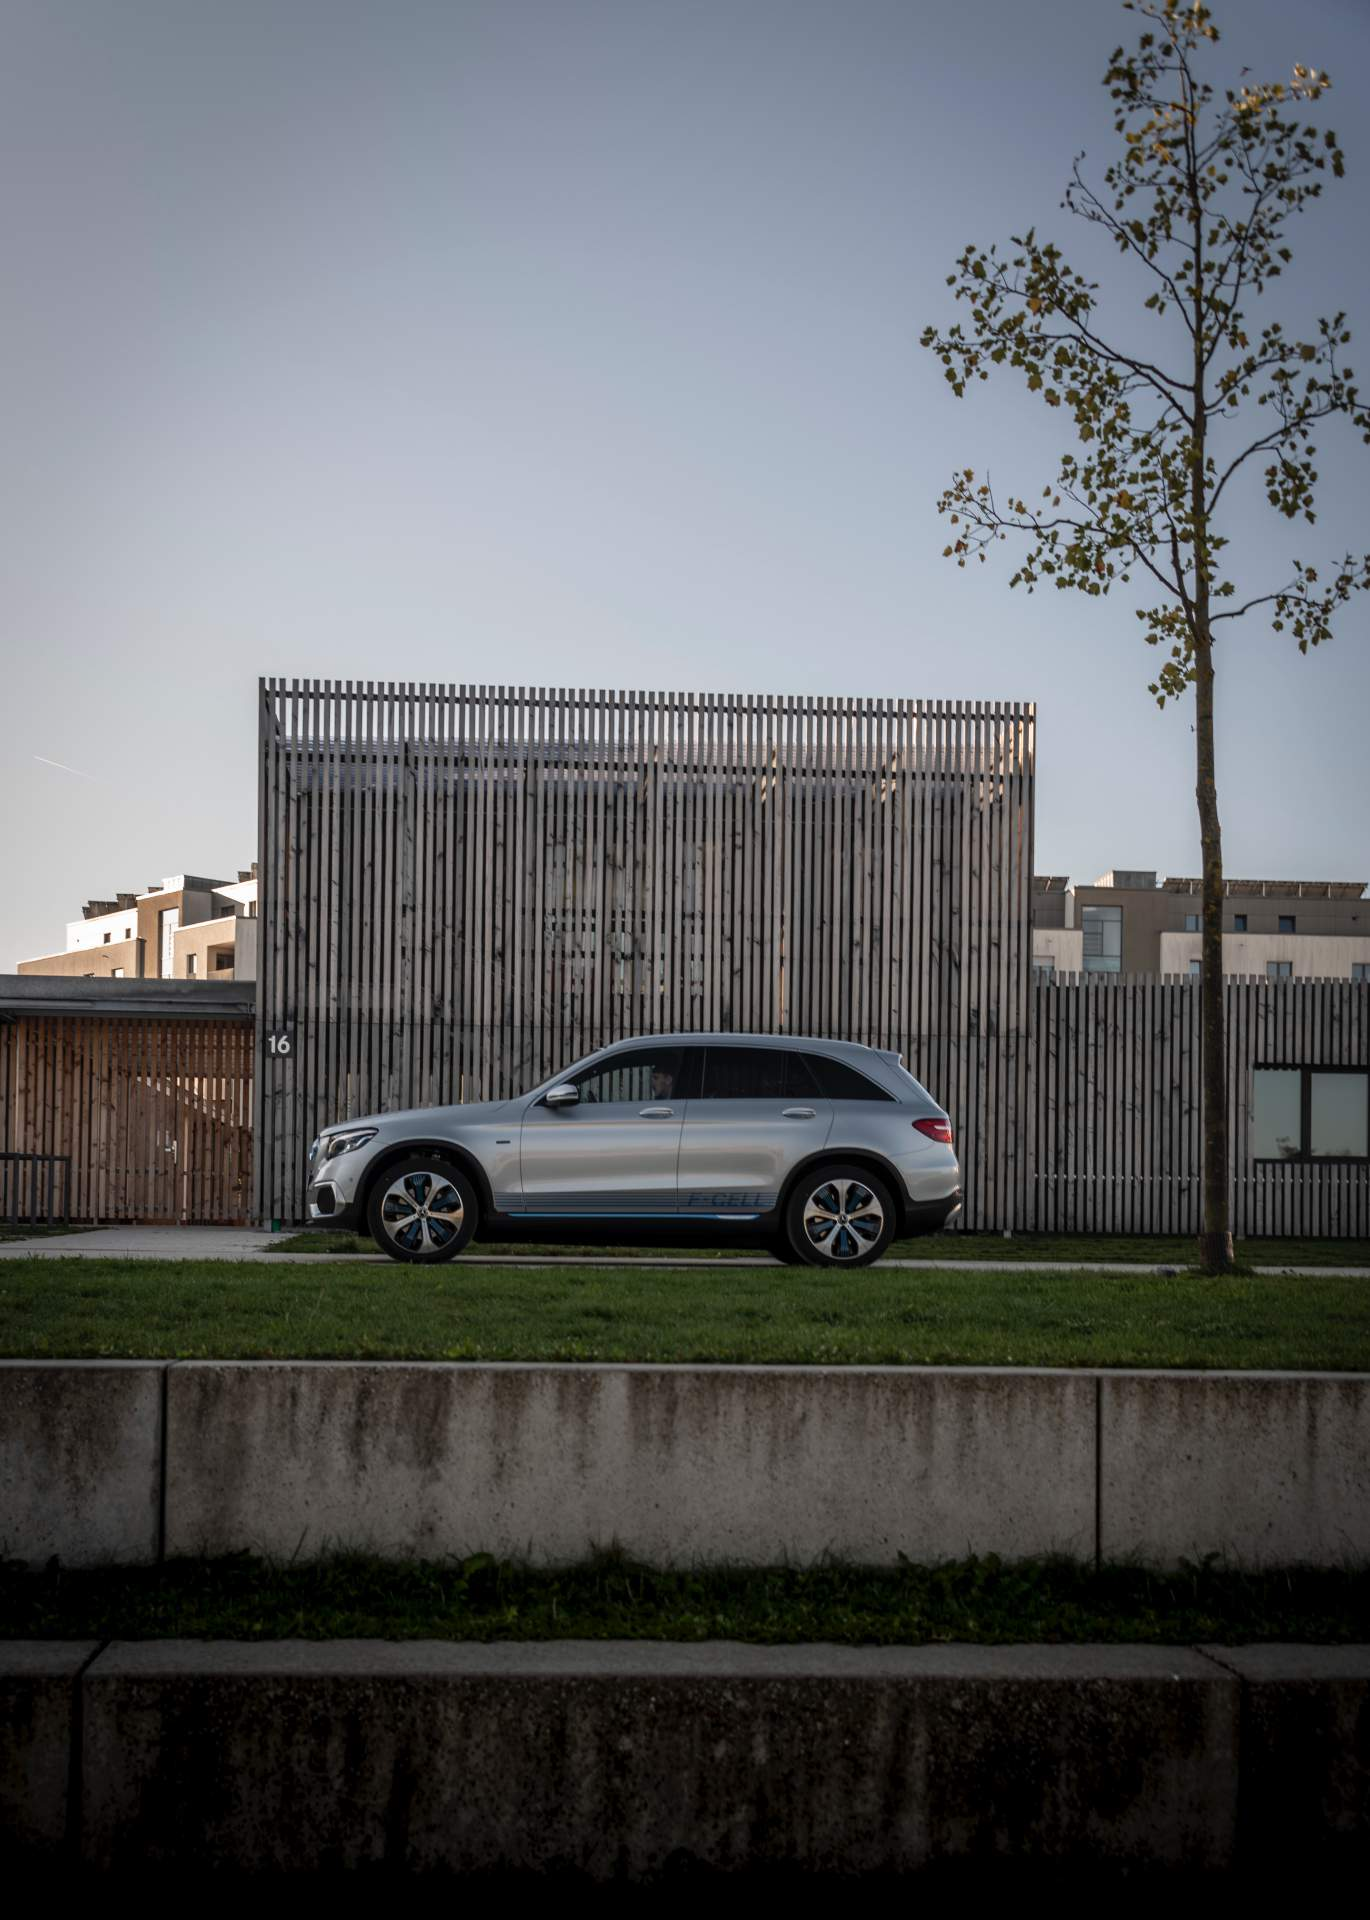 2019_Mercedes_GLC_F-Cell_0060